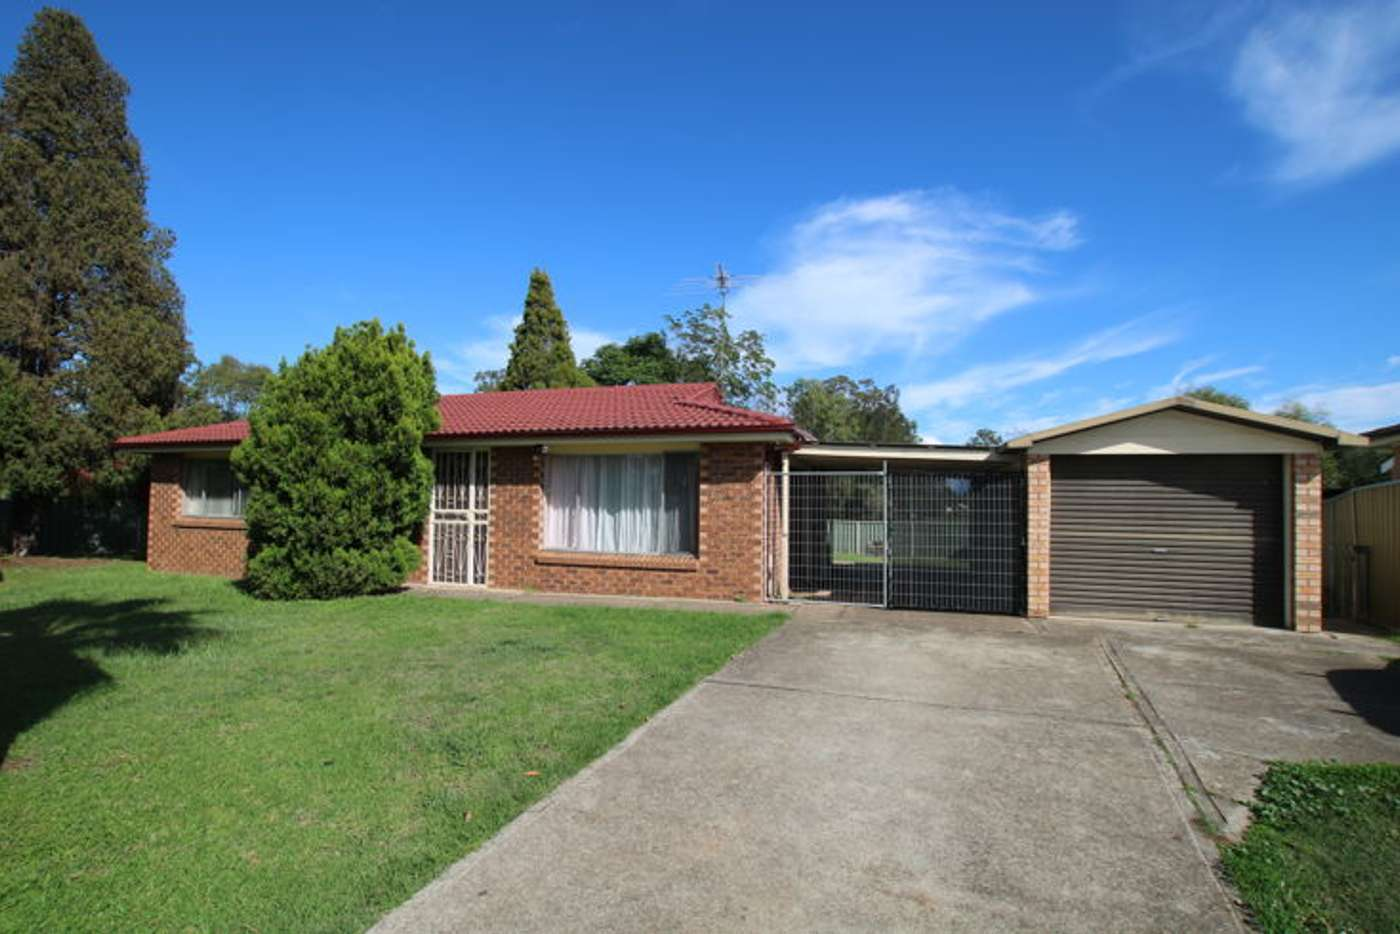 Main view of Homely house listing, 9 Danube Place, St Clair NSW 2759